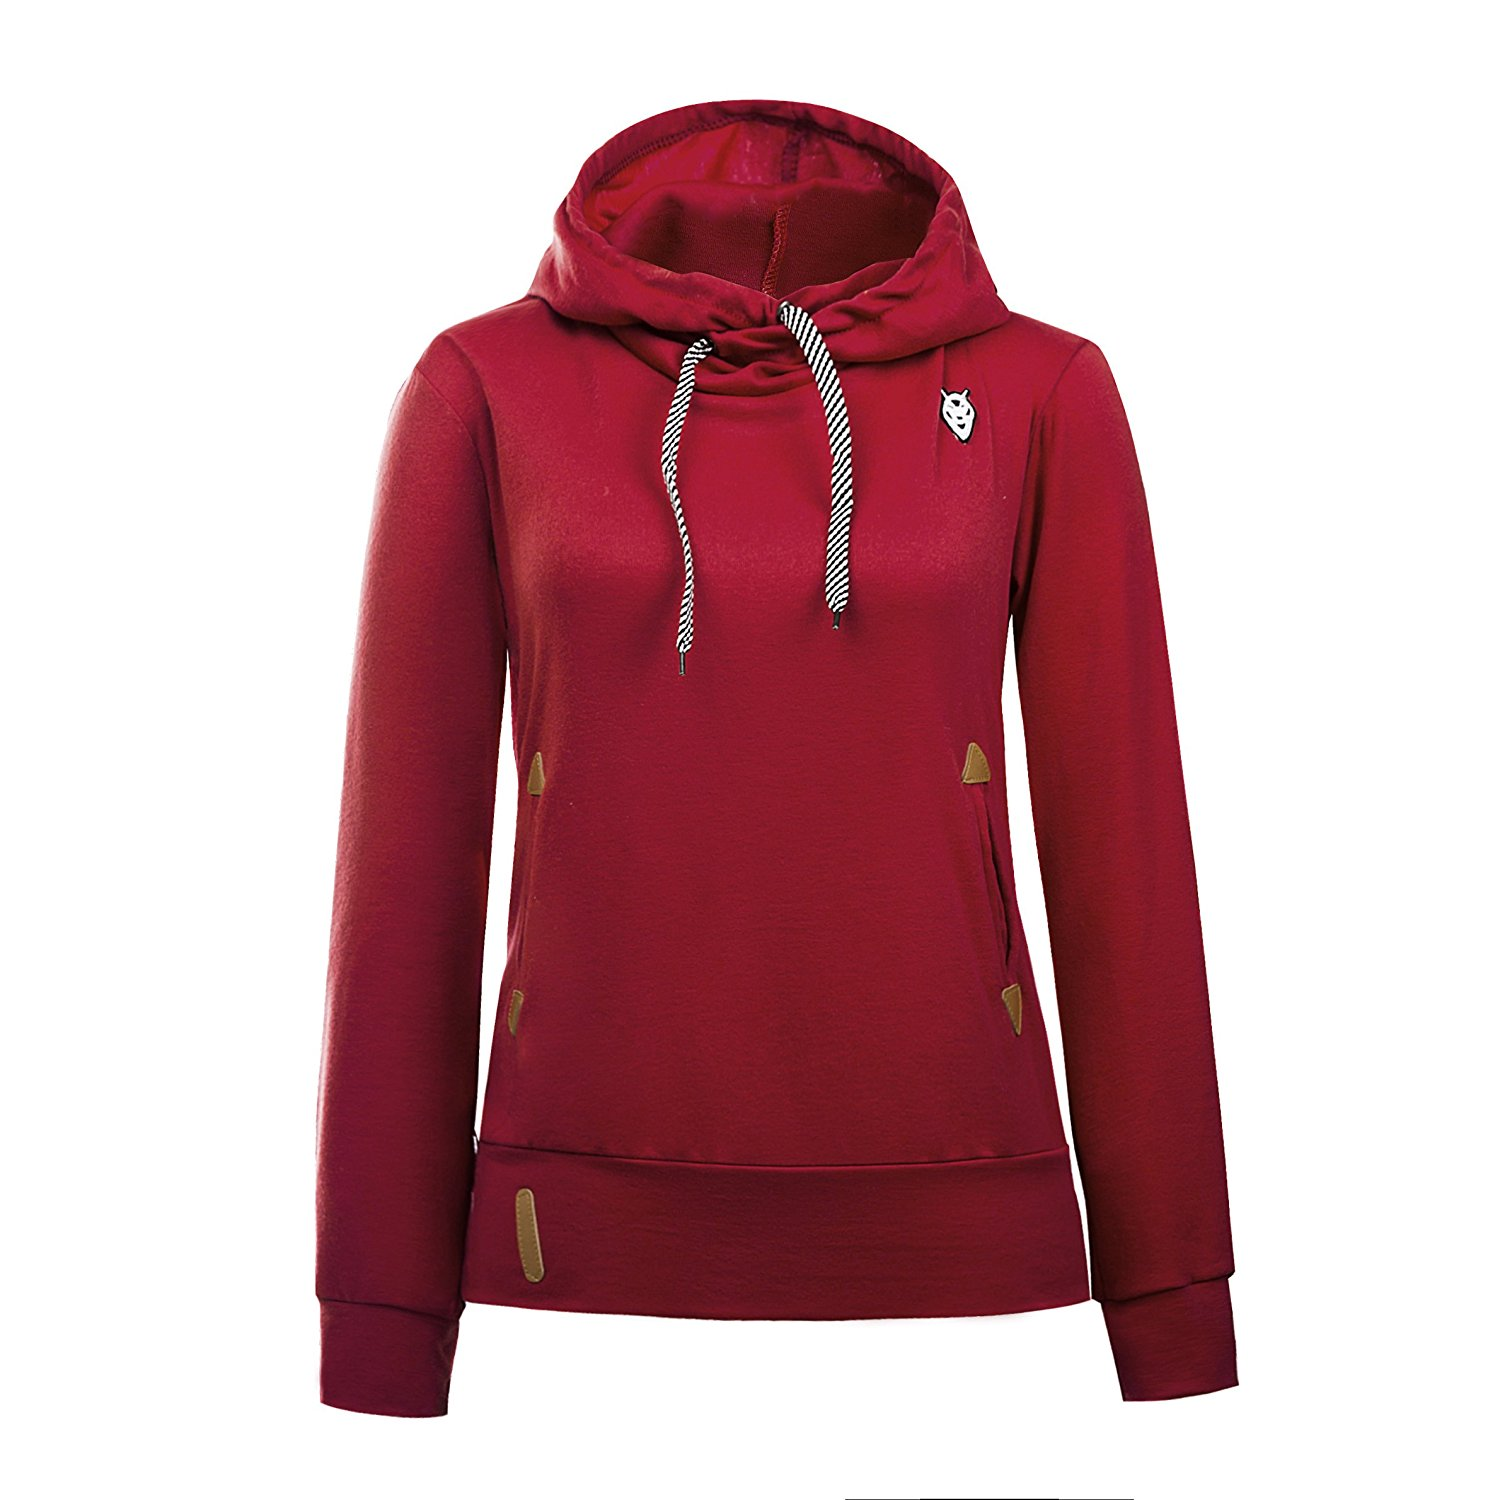 ForeMode Women Solid Funnel Neck Pullover Hooded Sweatshirt